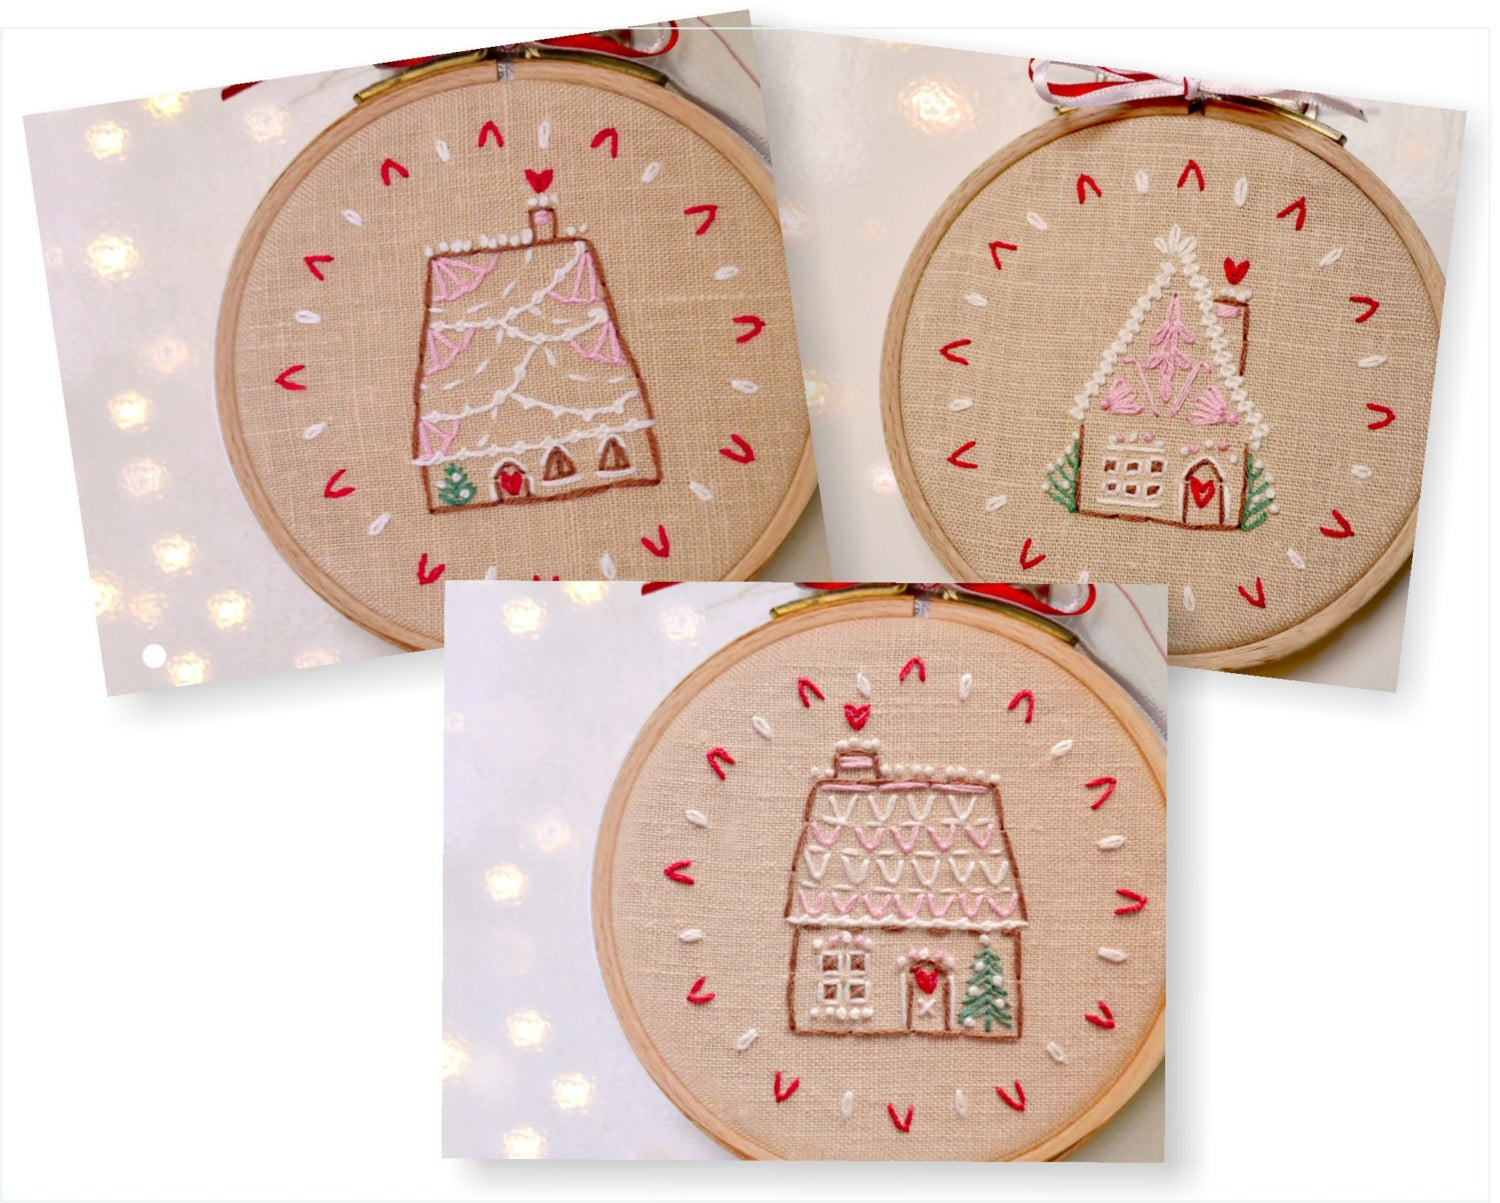 Christmas Hand Embroidery Patterns Christmas Hand Embroidery Pattern Pdf Diy Christmas Ornaments Naiveneedle